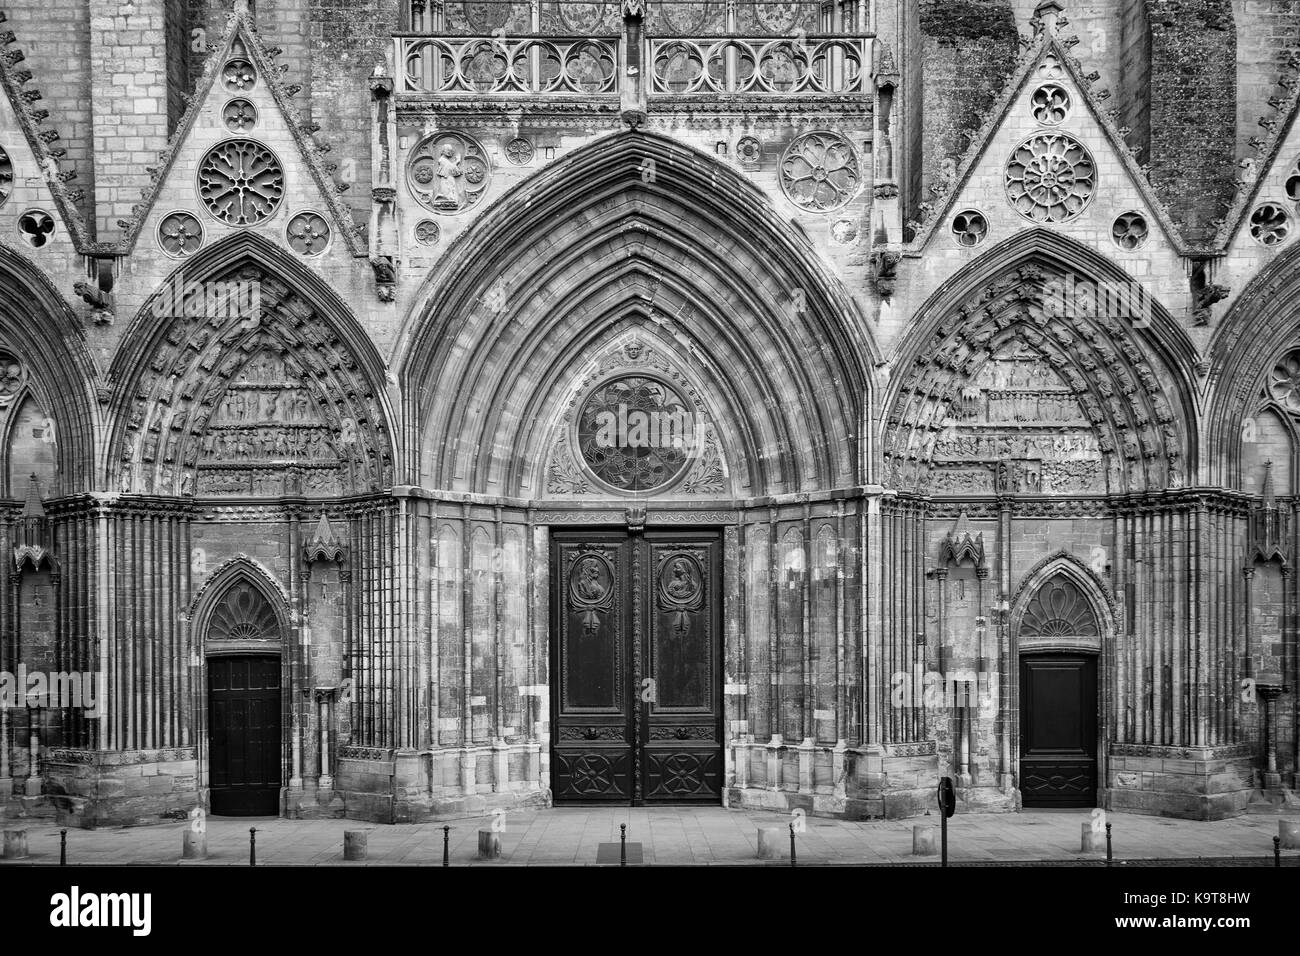 Church Front Doors Stock Photos & Church Front Doors Stock Images ...